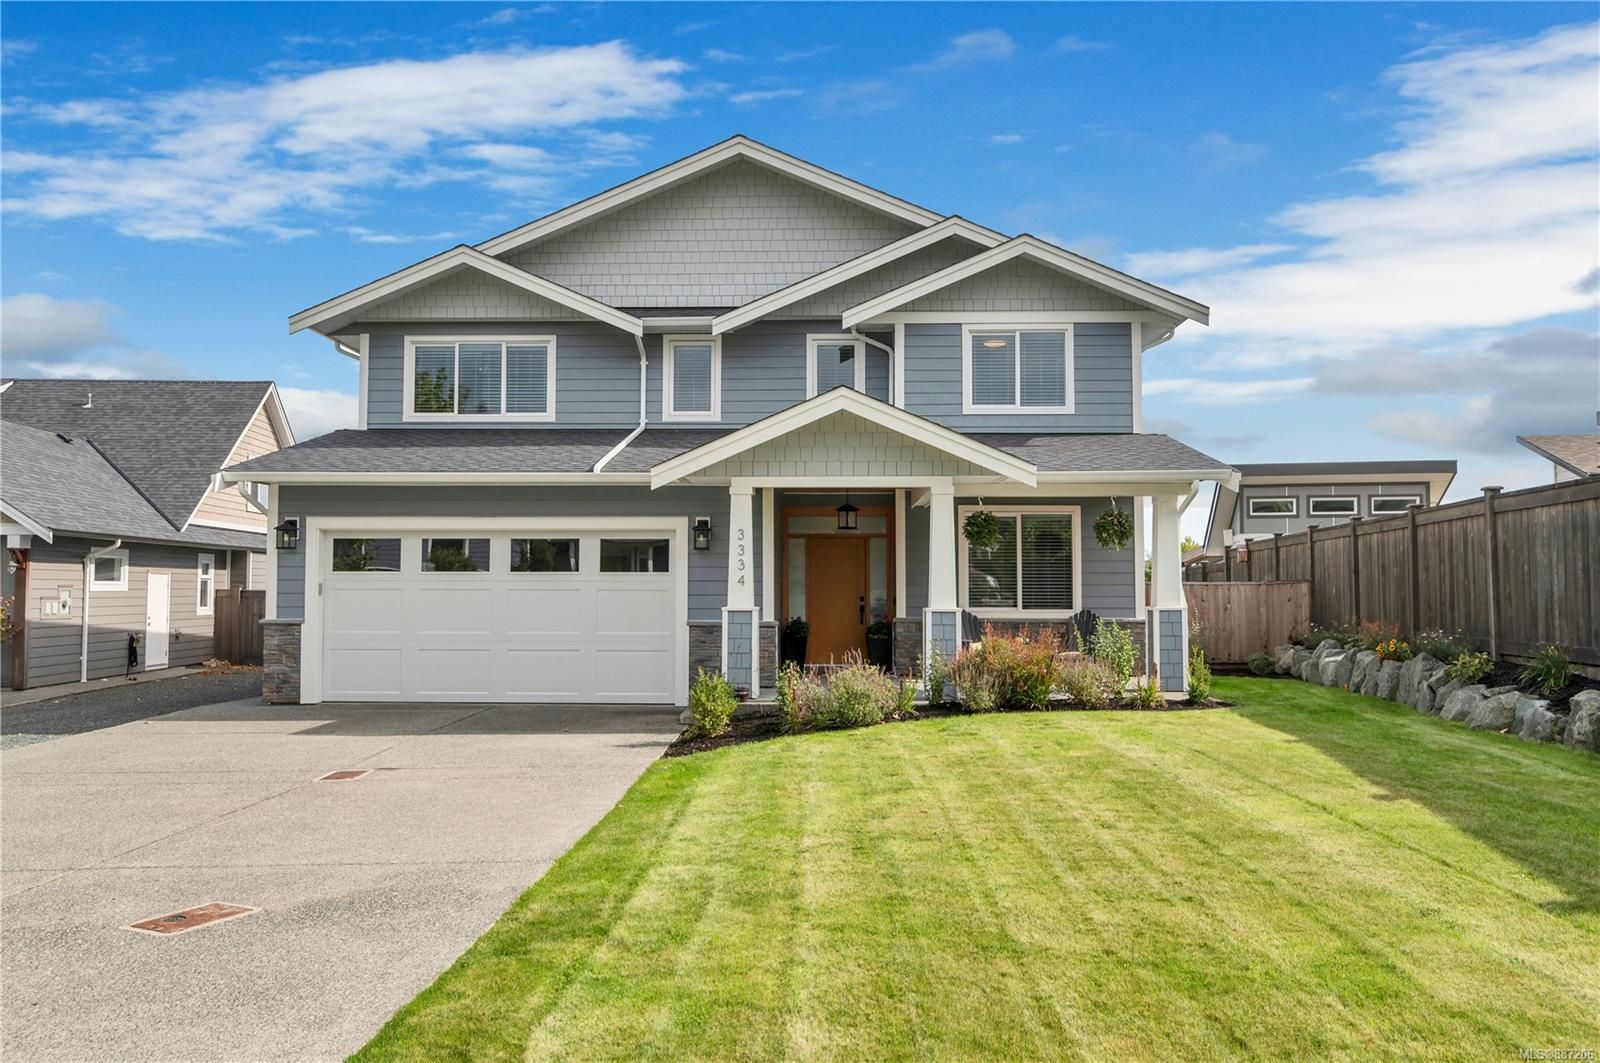 4 bedroom plus den, great room and family room